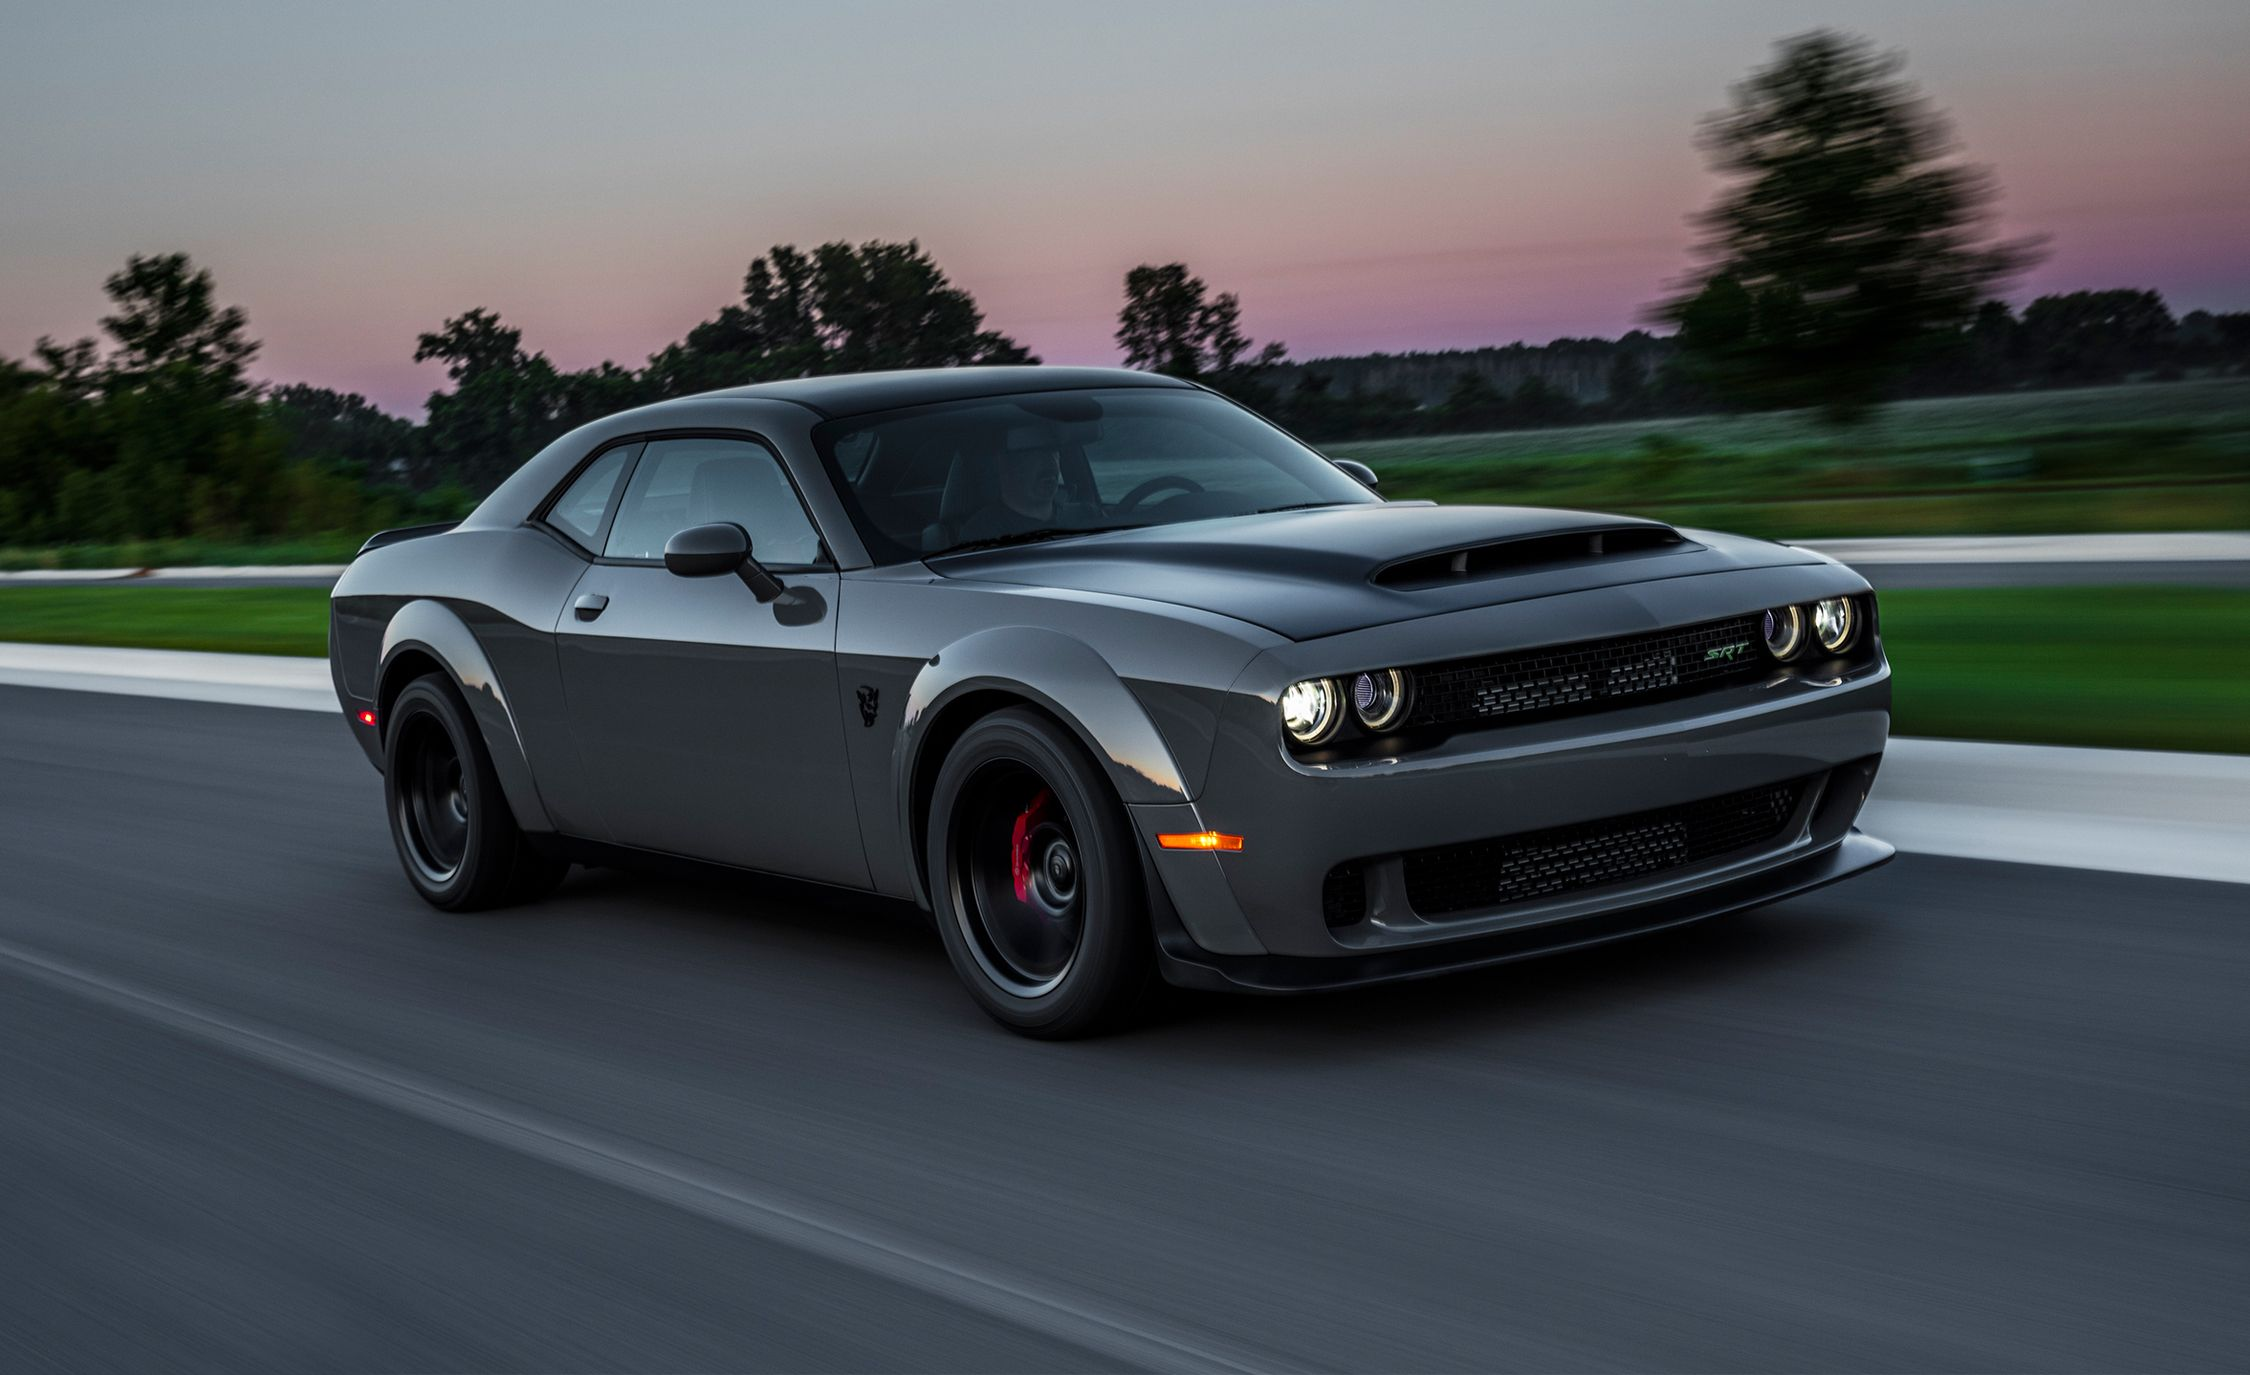 2018 Dodge Challenger Srt Demon First Drive Review Car And Driver